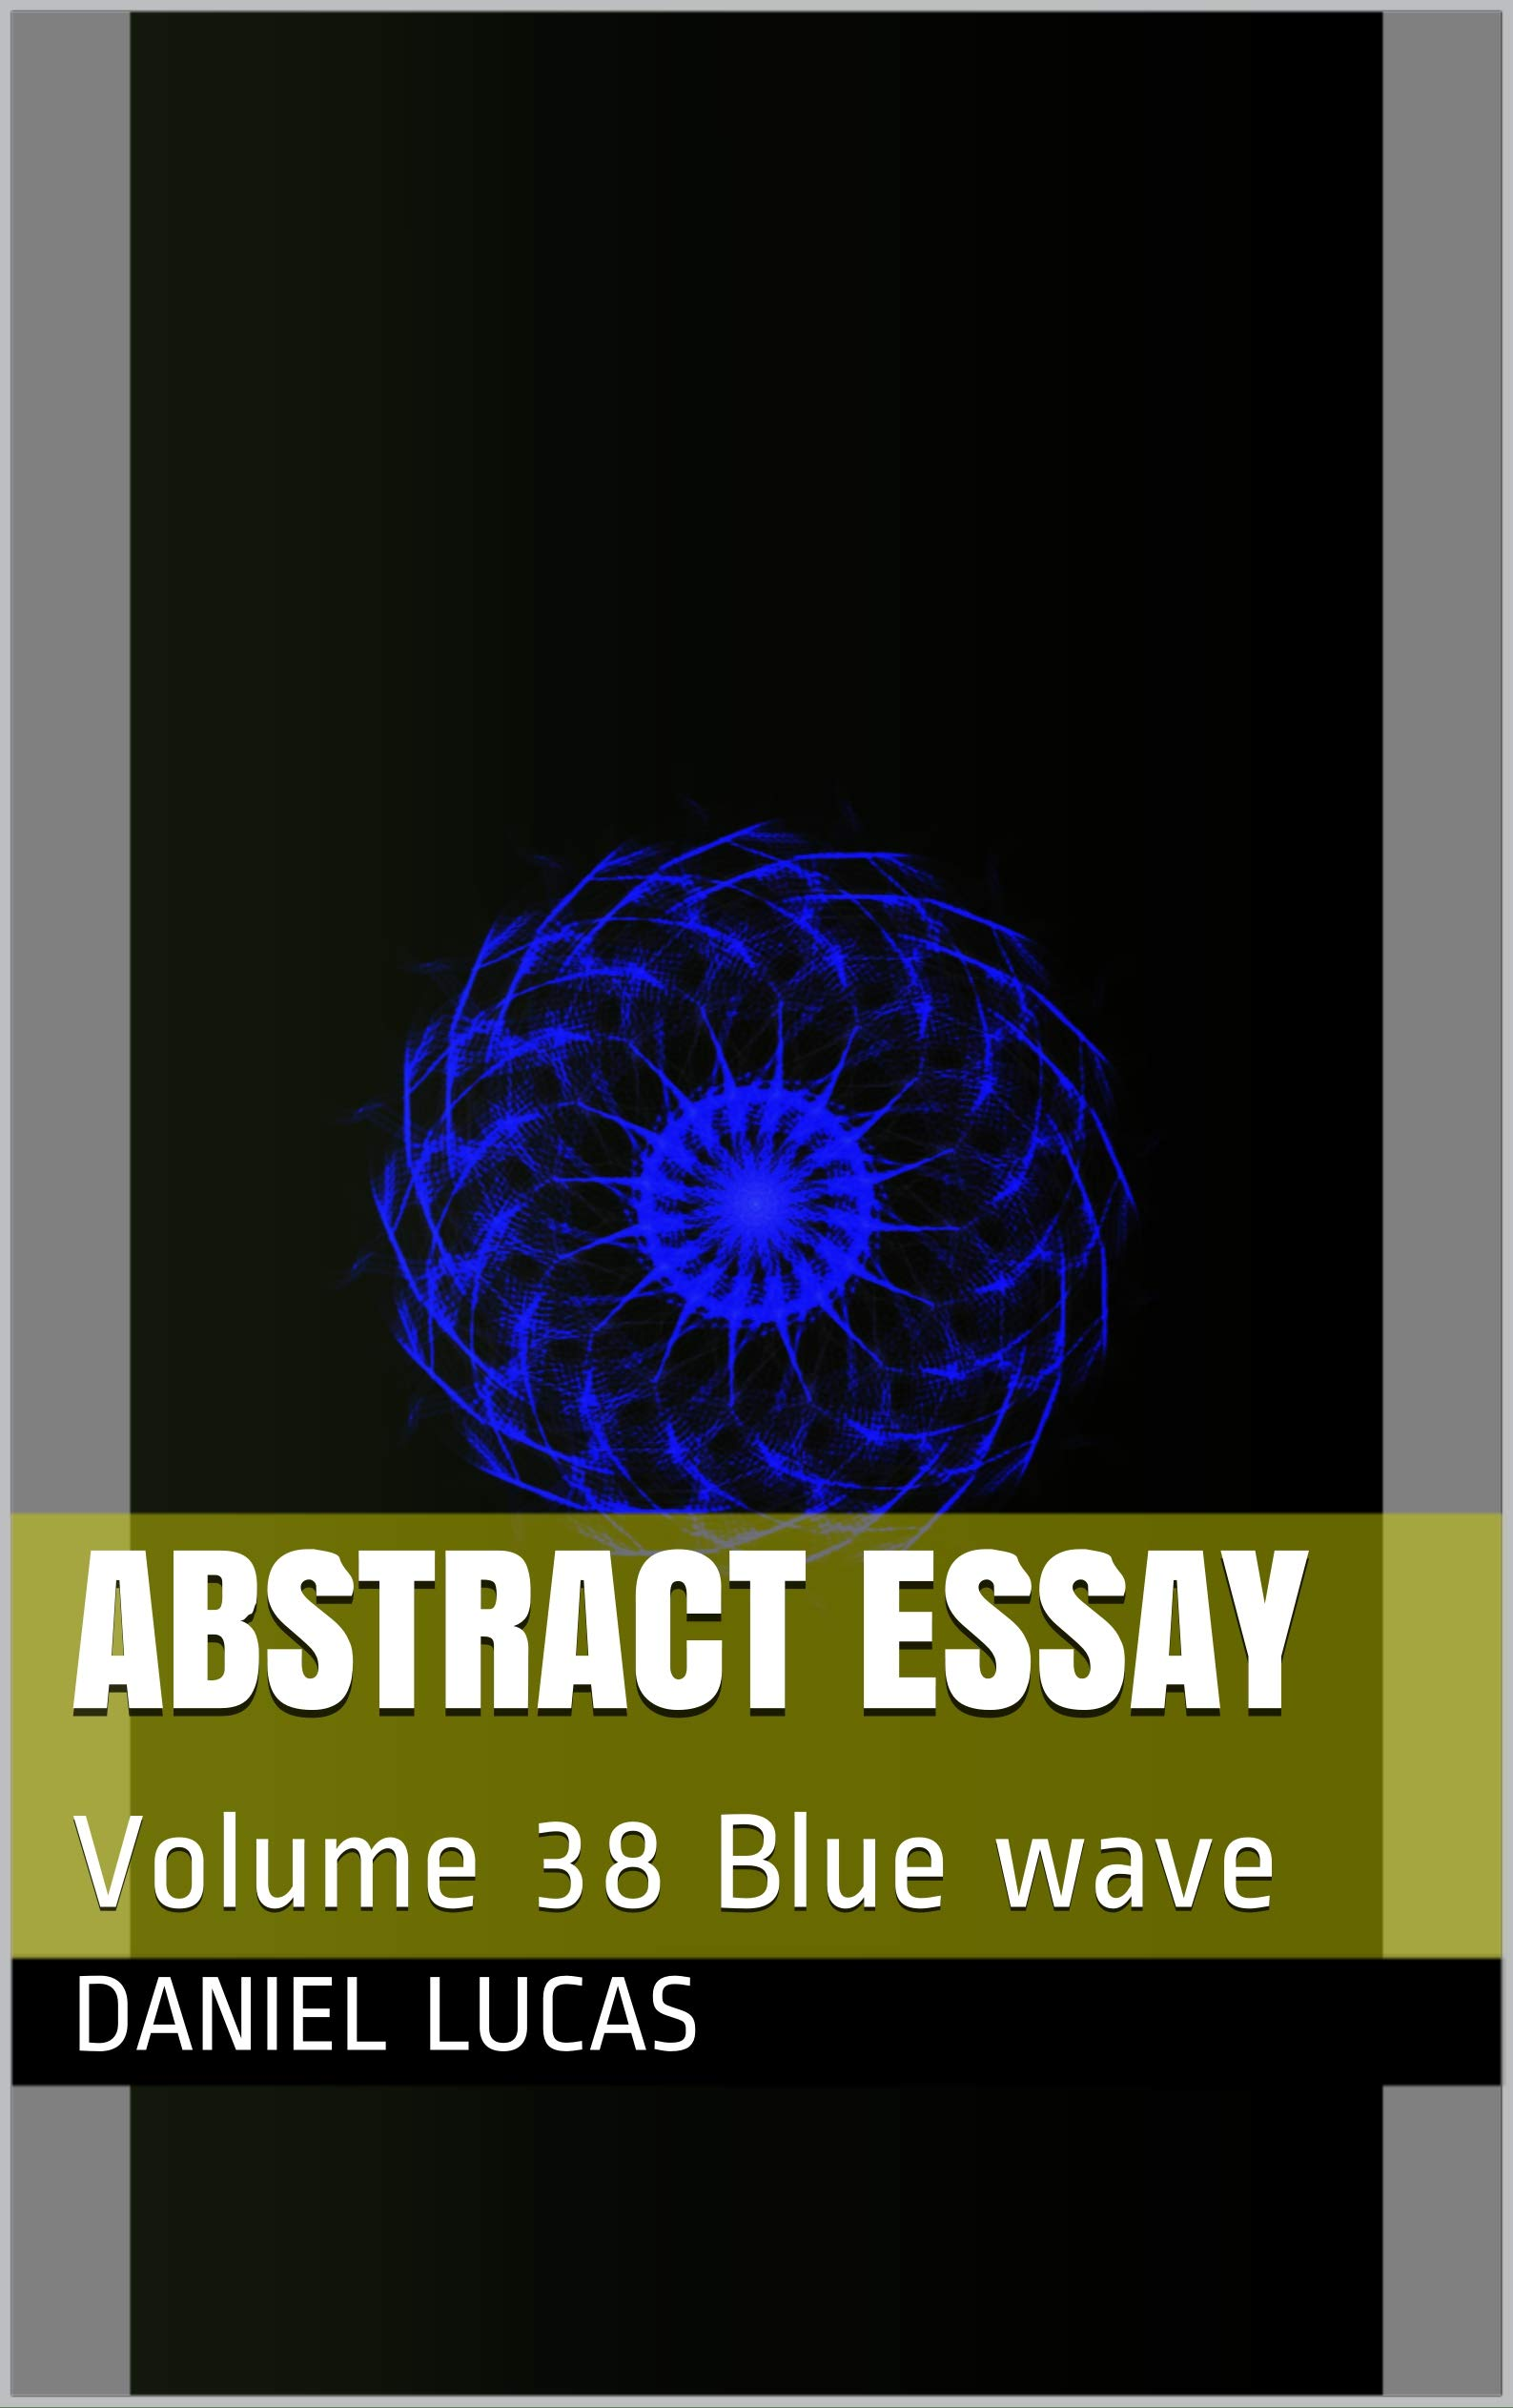 Abstract Essay: Volume 38 Blue wave